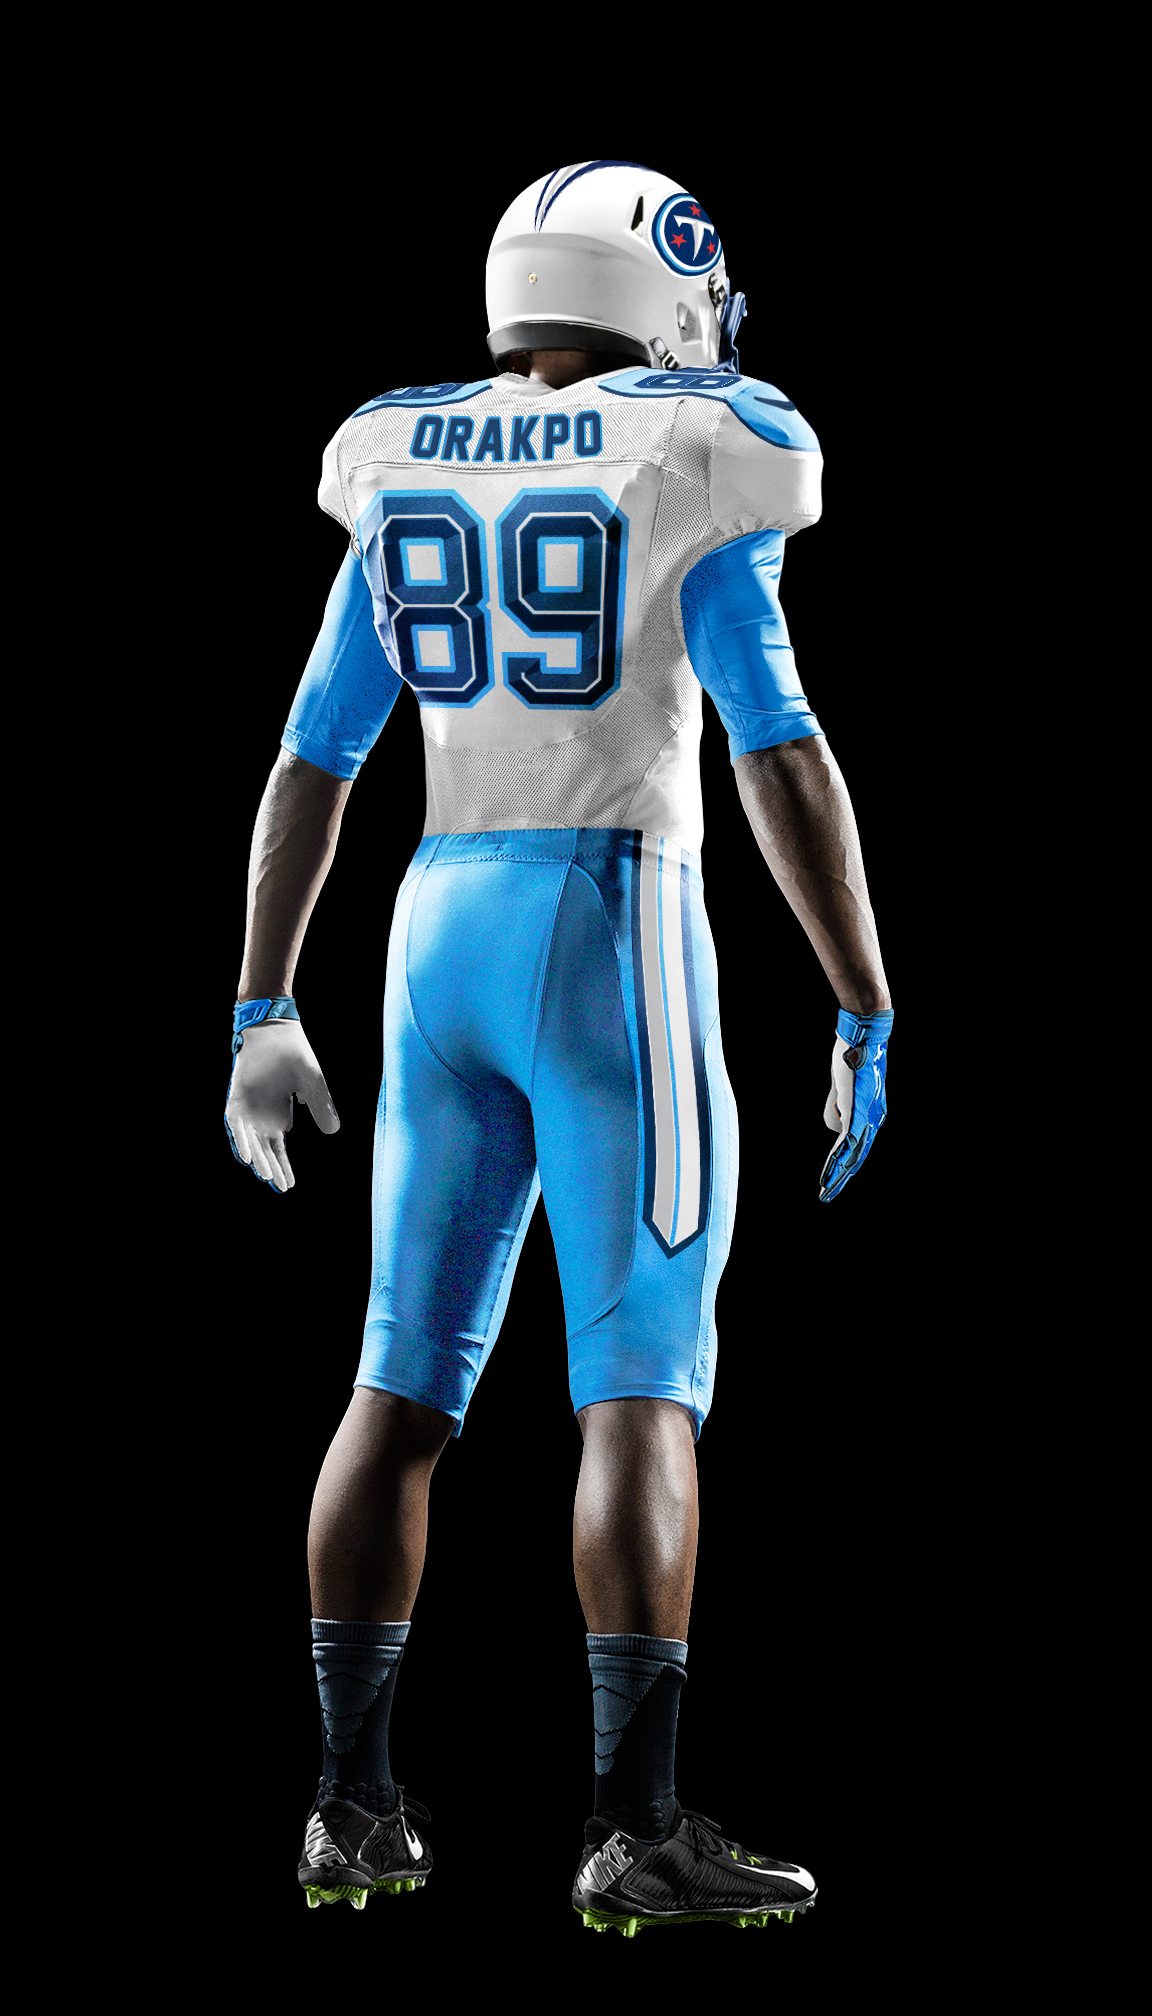 Nfl football uniform